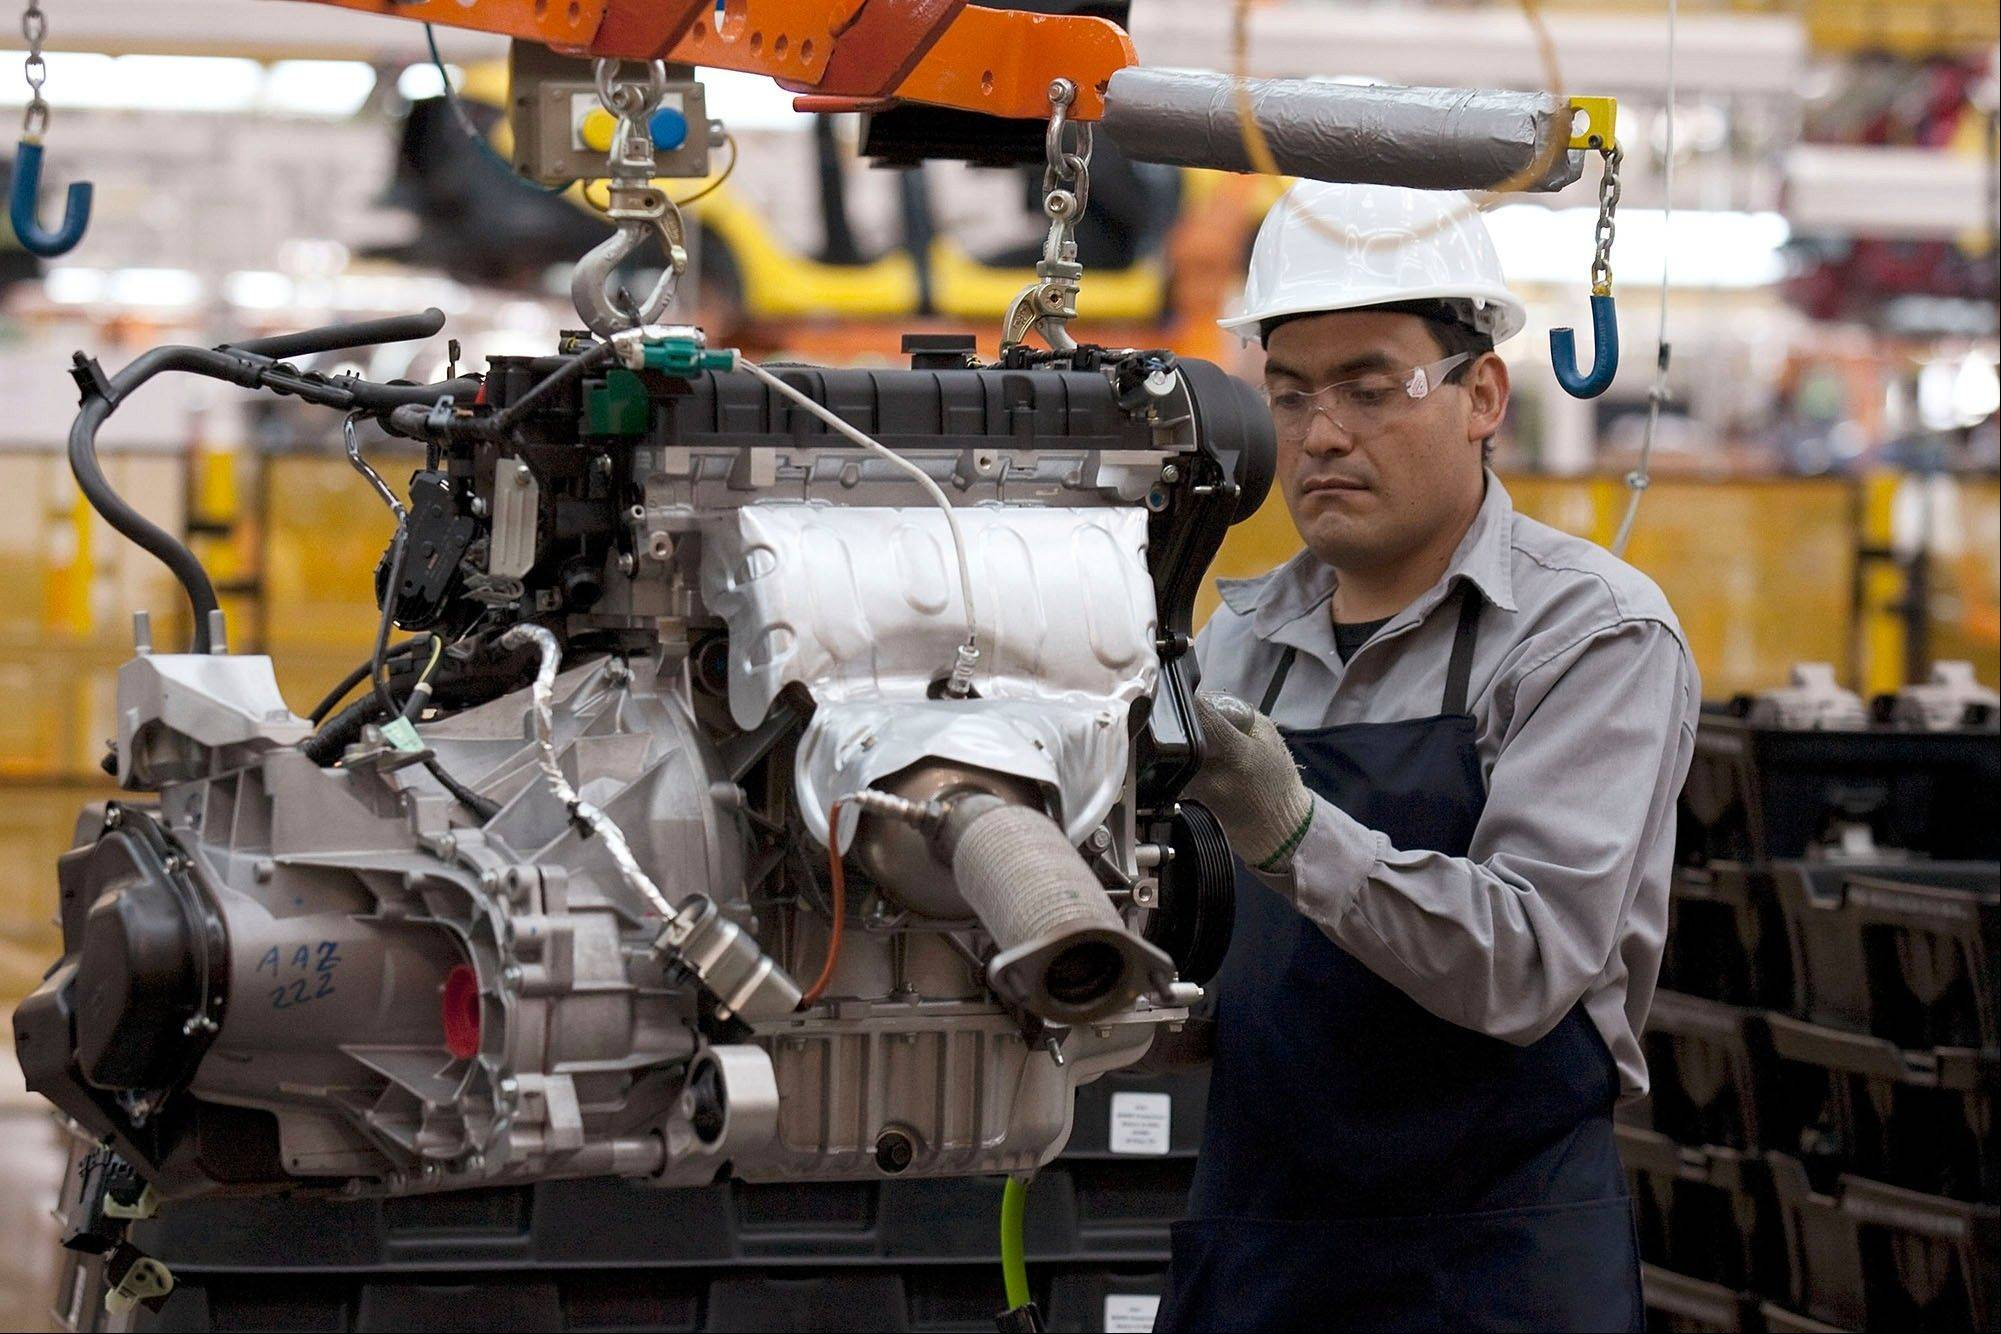 A boom in auto manufacturing in Mexico is creating worries for U.S. autoworkers about the long-term prospects for auto manufacturing jobs.